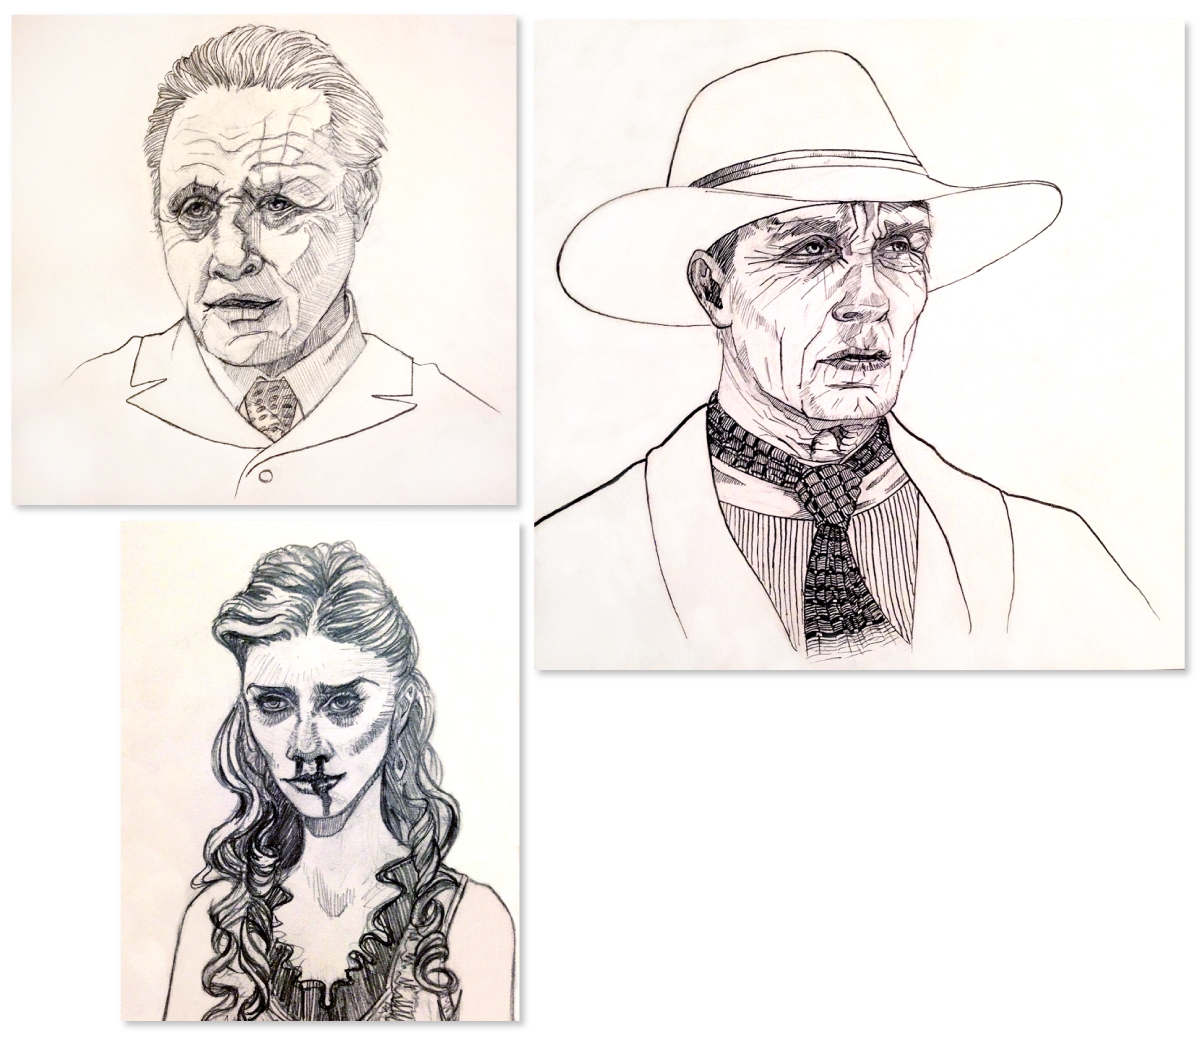 Character sketches from HBO's Westworld